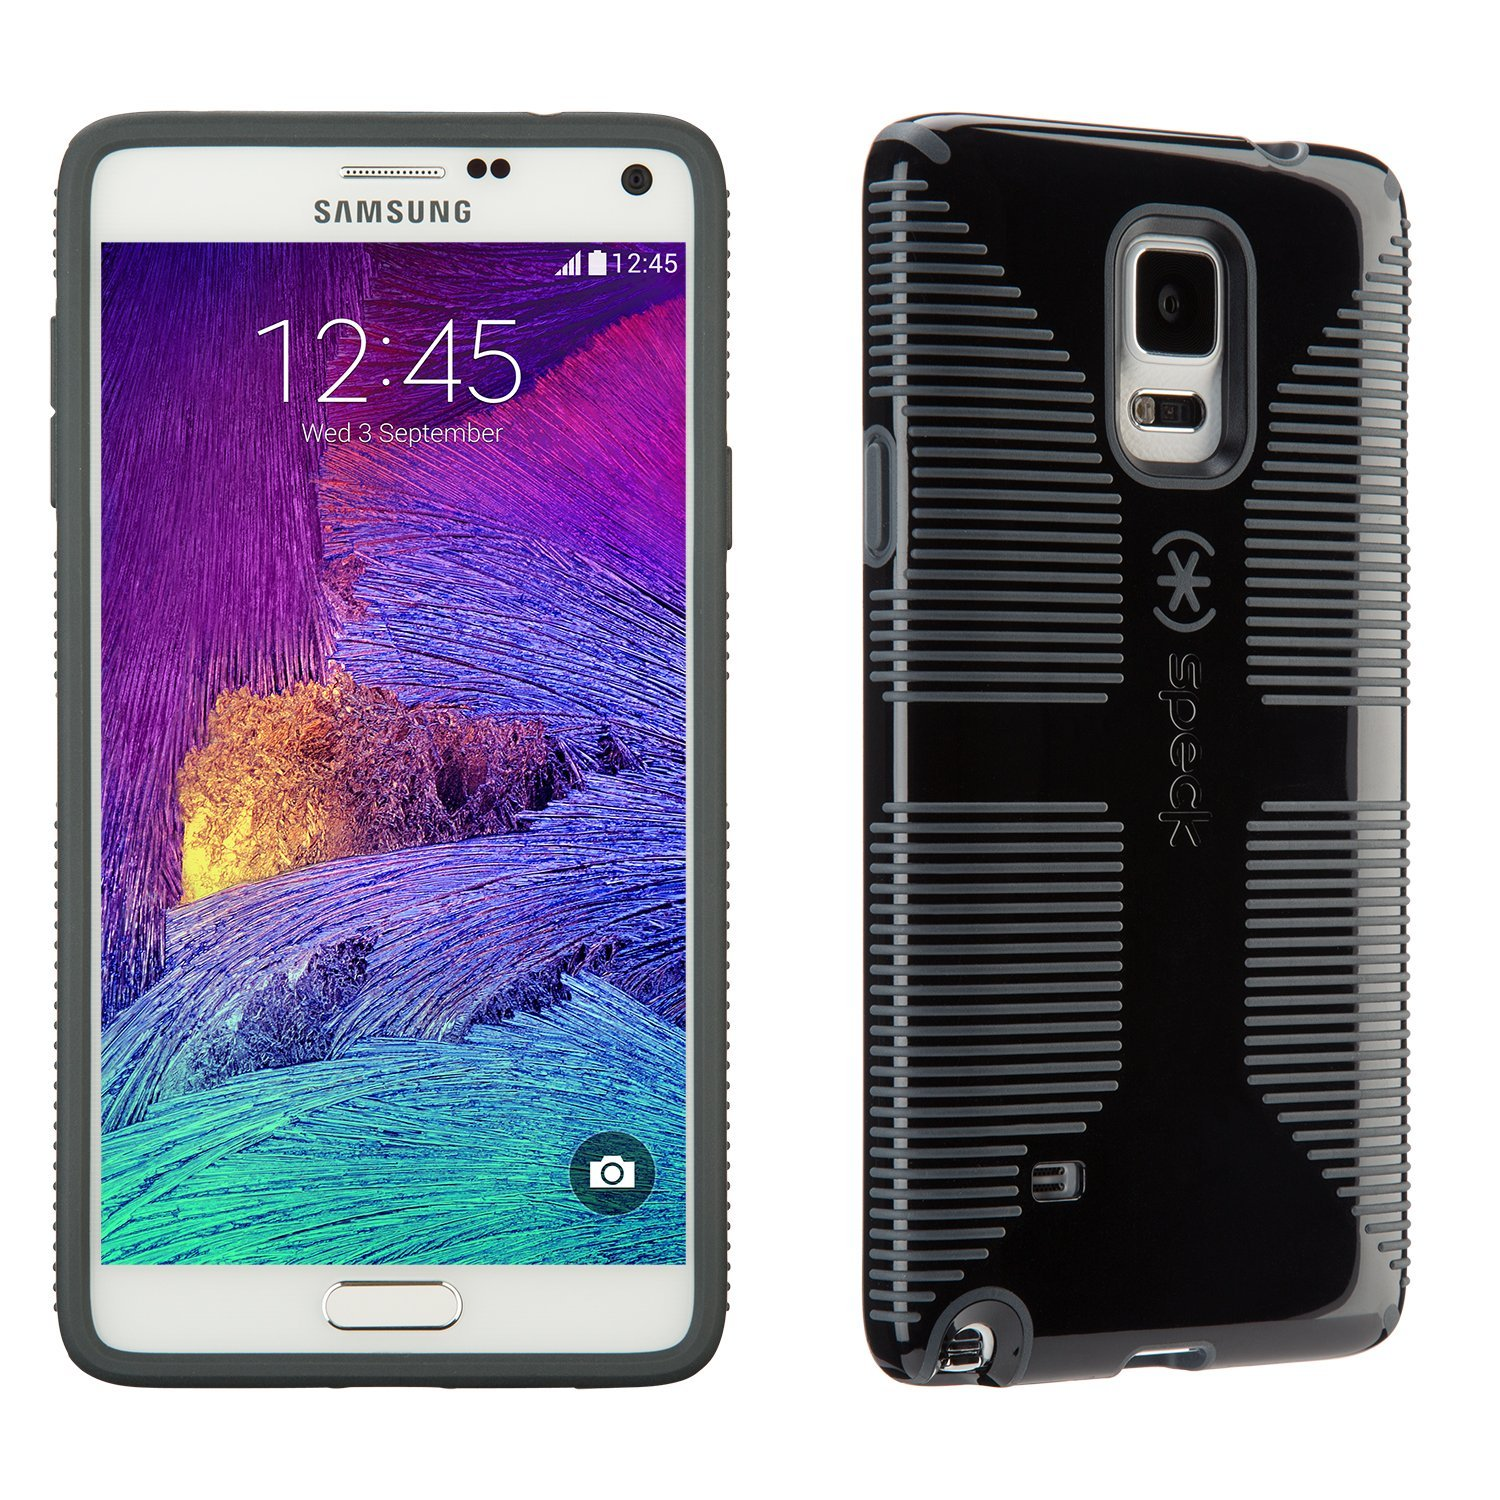 Galaxy-Note-4-Case-CandyShell-Grip-by-Speck